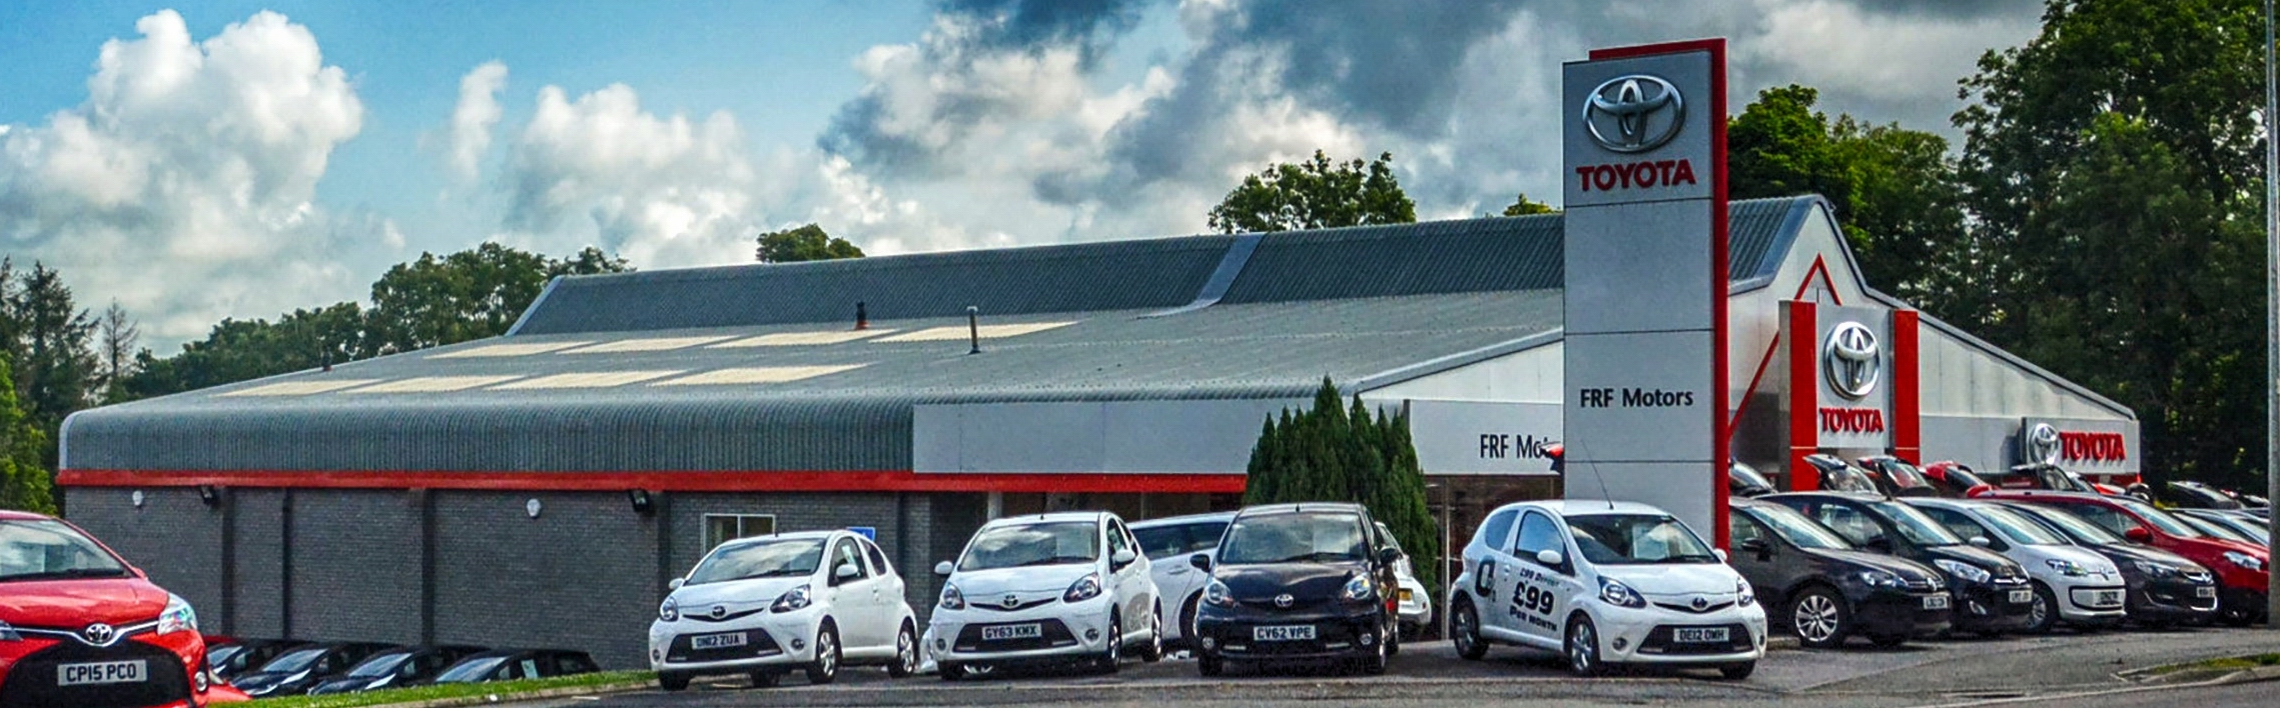 FRF Toyota Haverfordwest